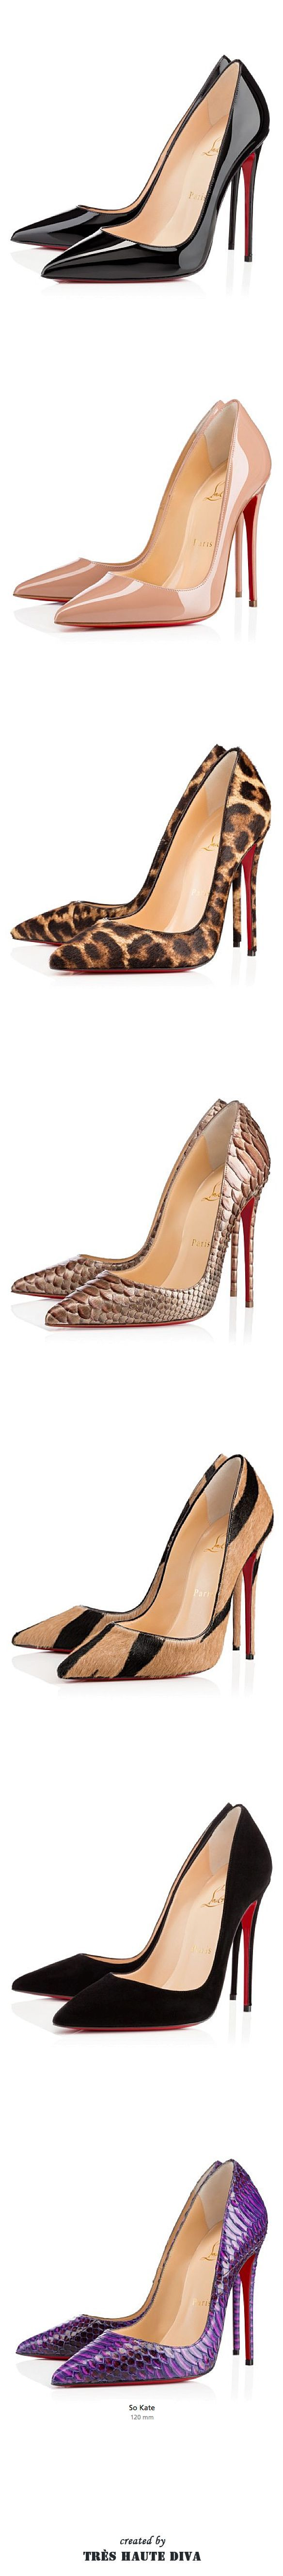 Christian Louboutin 'So Kate' Fall 2014. Classics. I will have all of them in my closet.   #louboutin